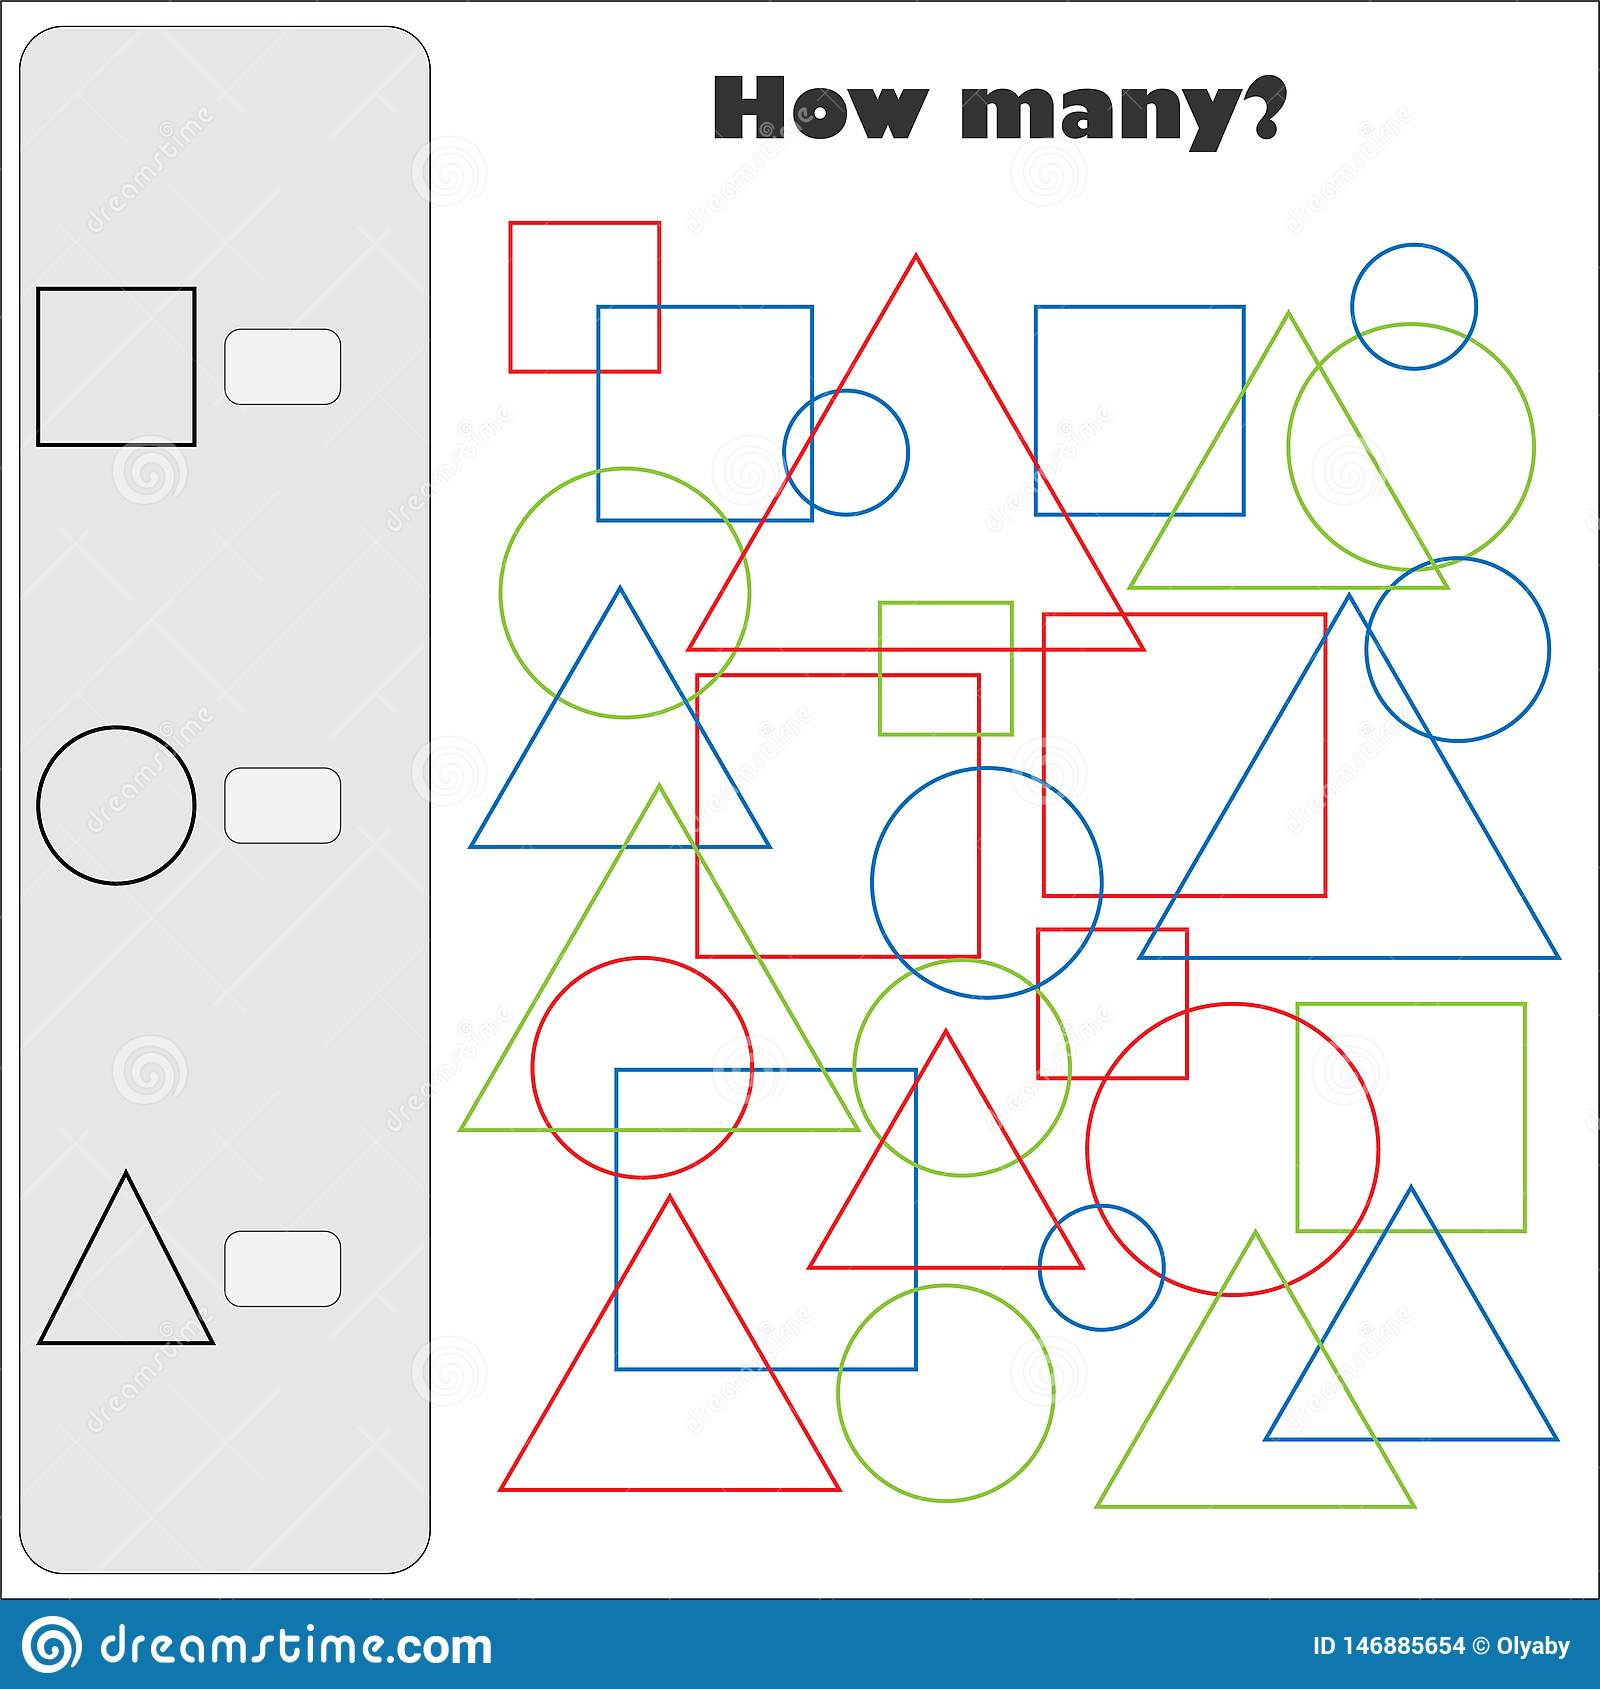 How Many Counting Game With Color Simple Geometric Shapes